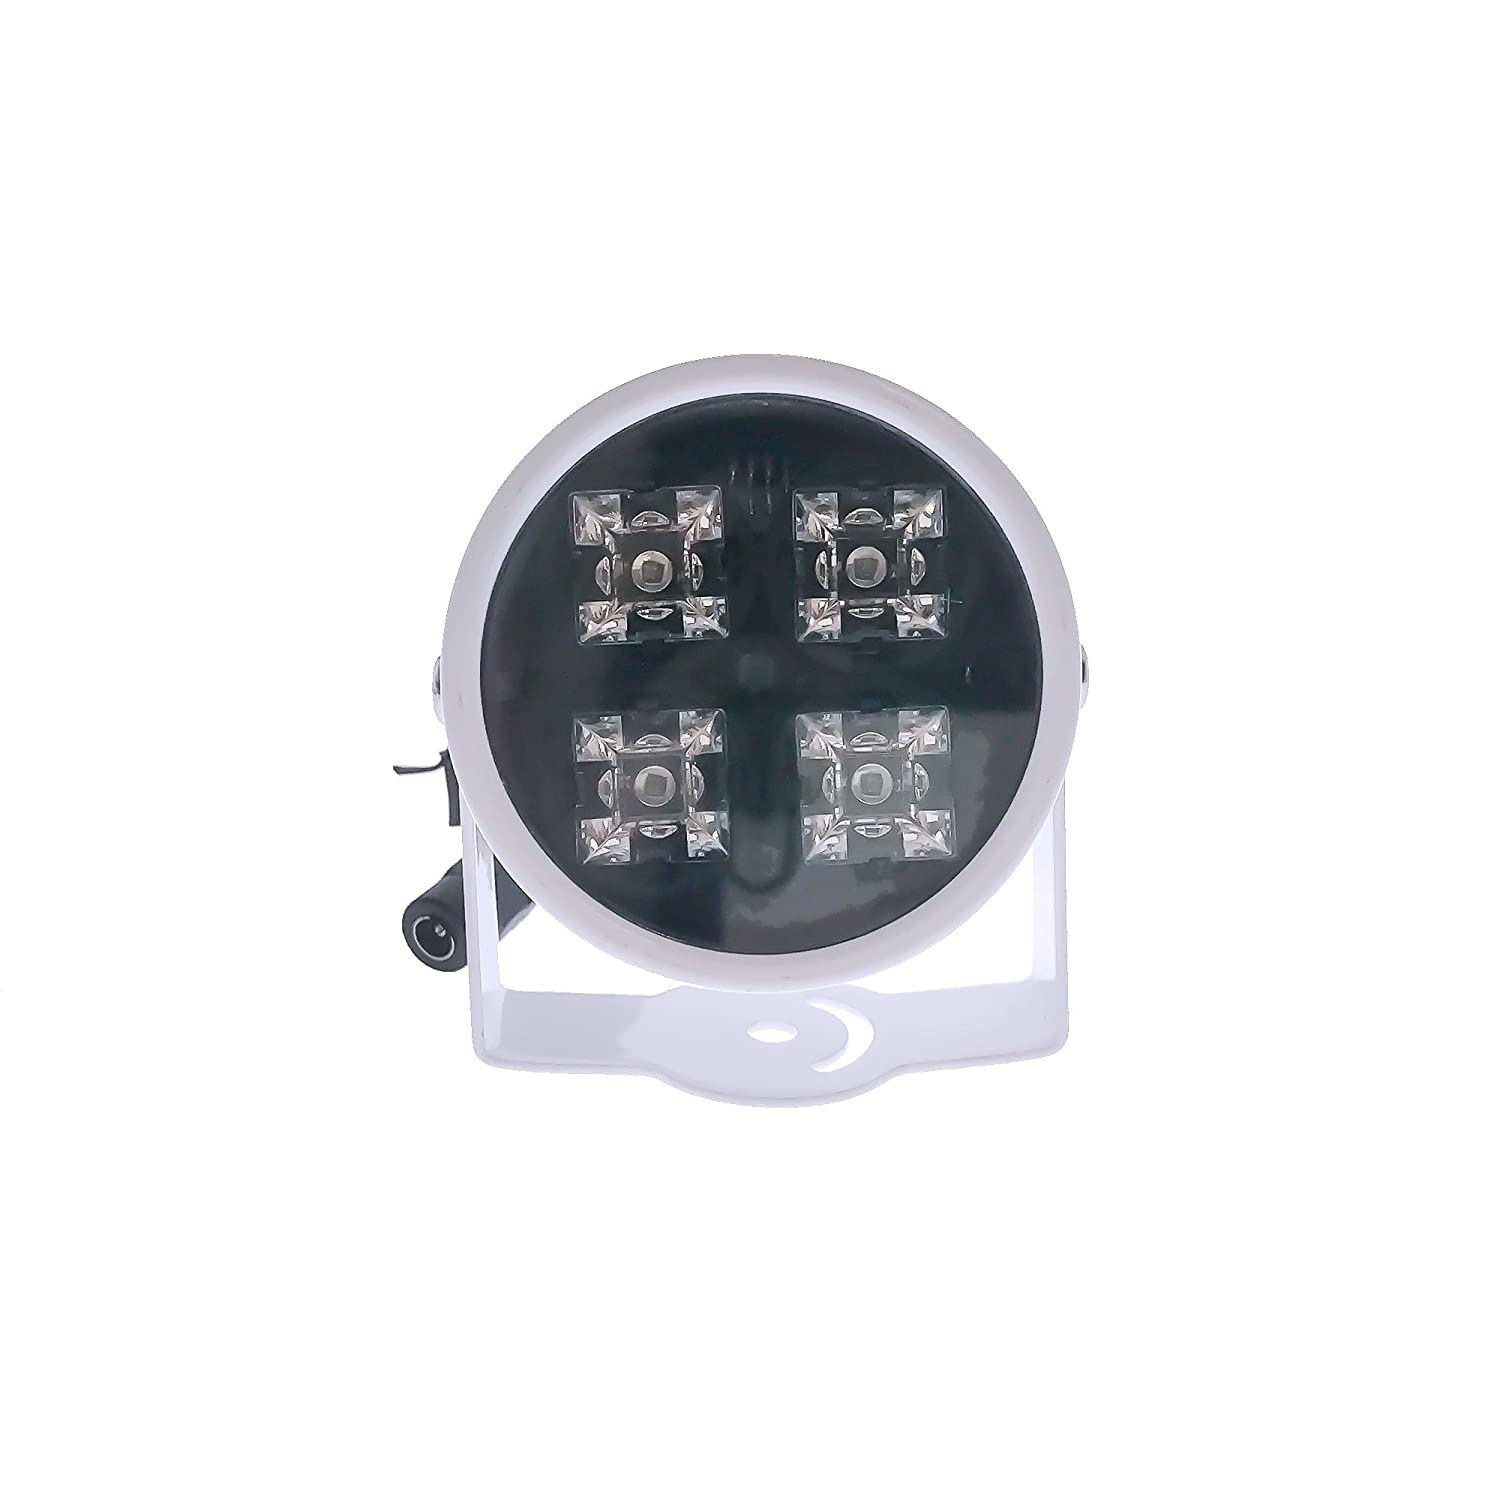 CMVision IR40 WideAngle 60-80 Degree 4pc Power LED 100feet Long Range Indoor/ourdoor IR Array Illuminator